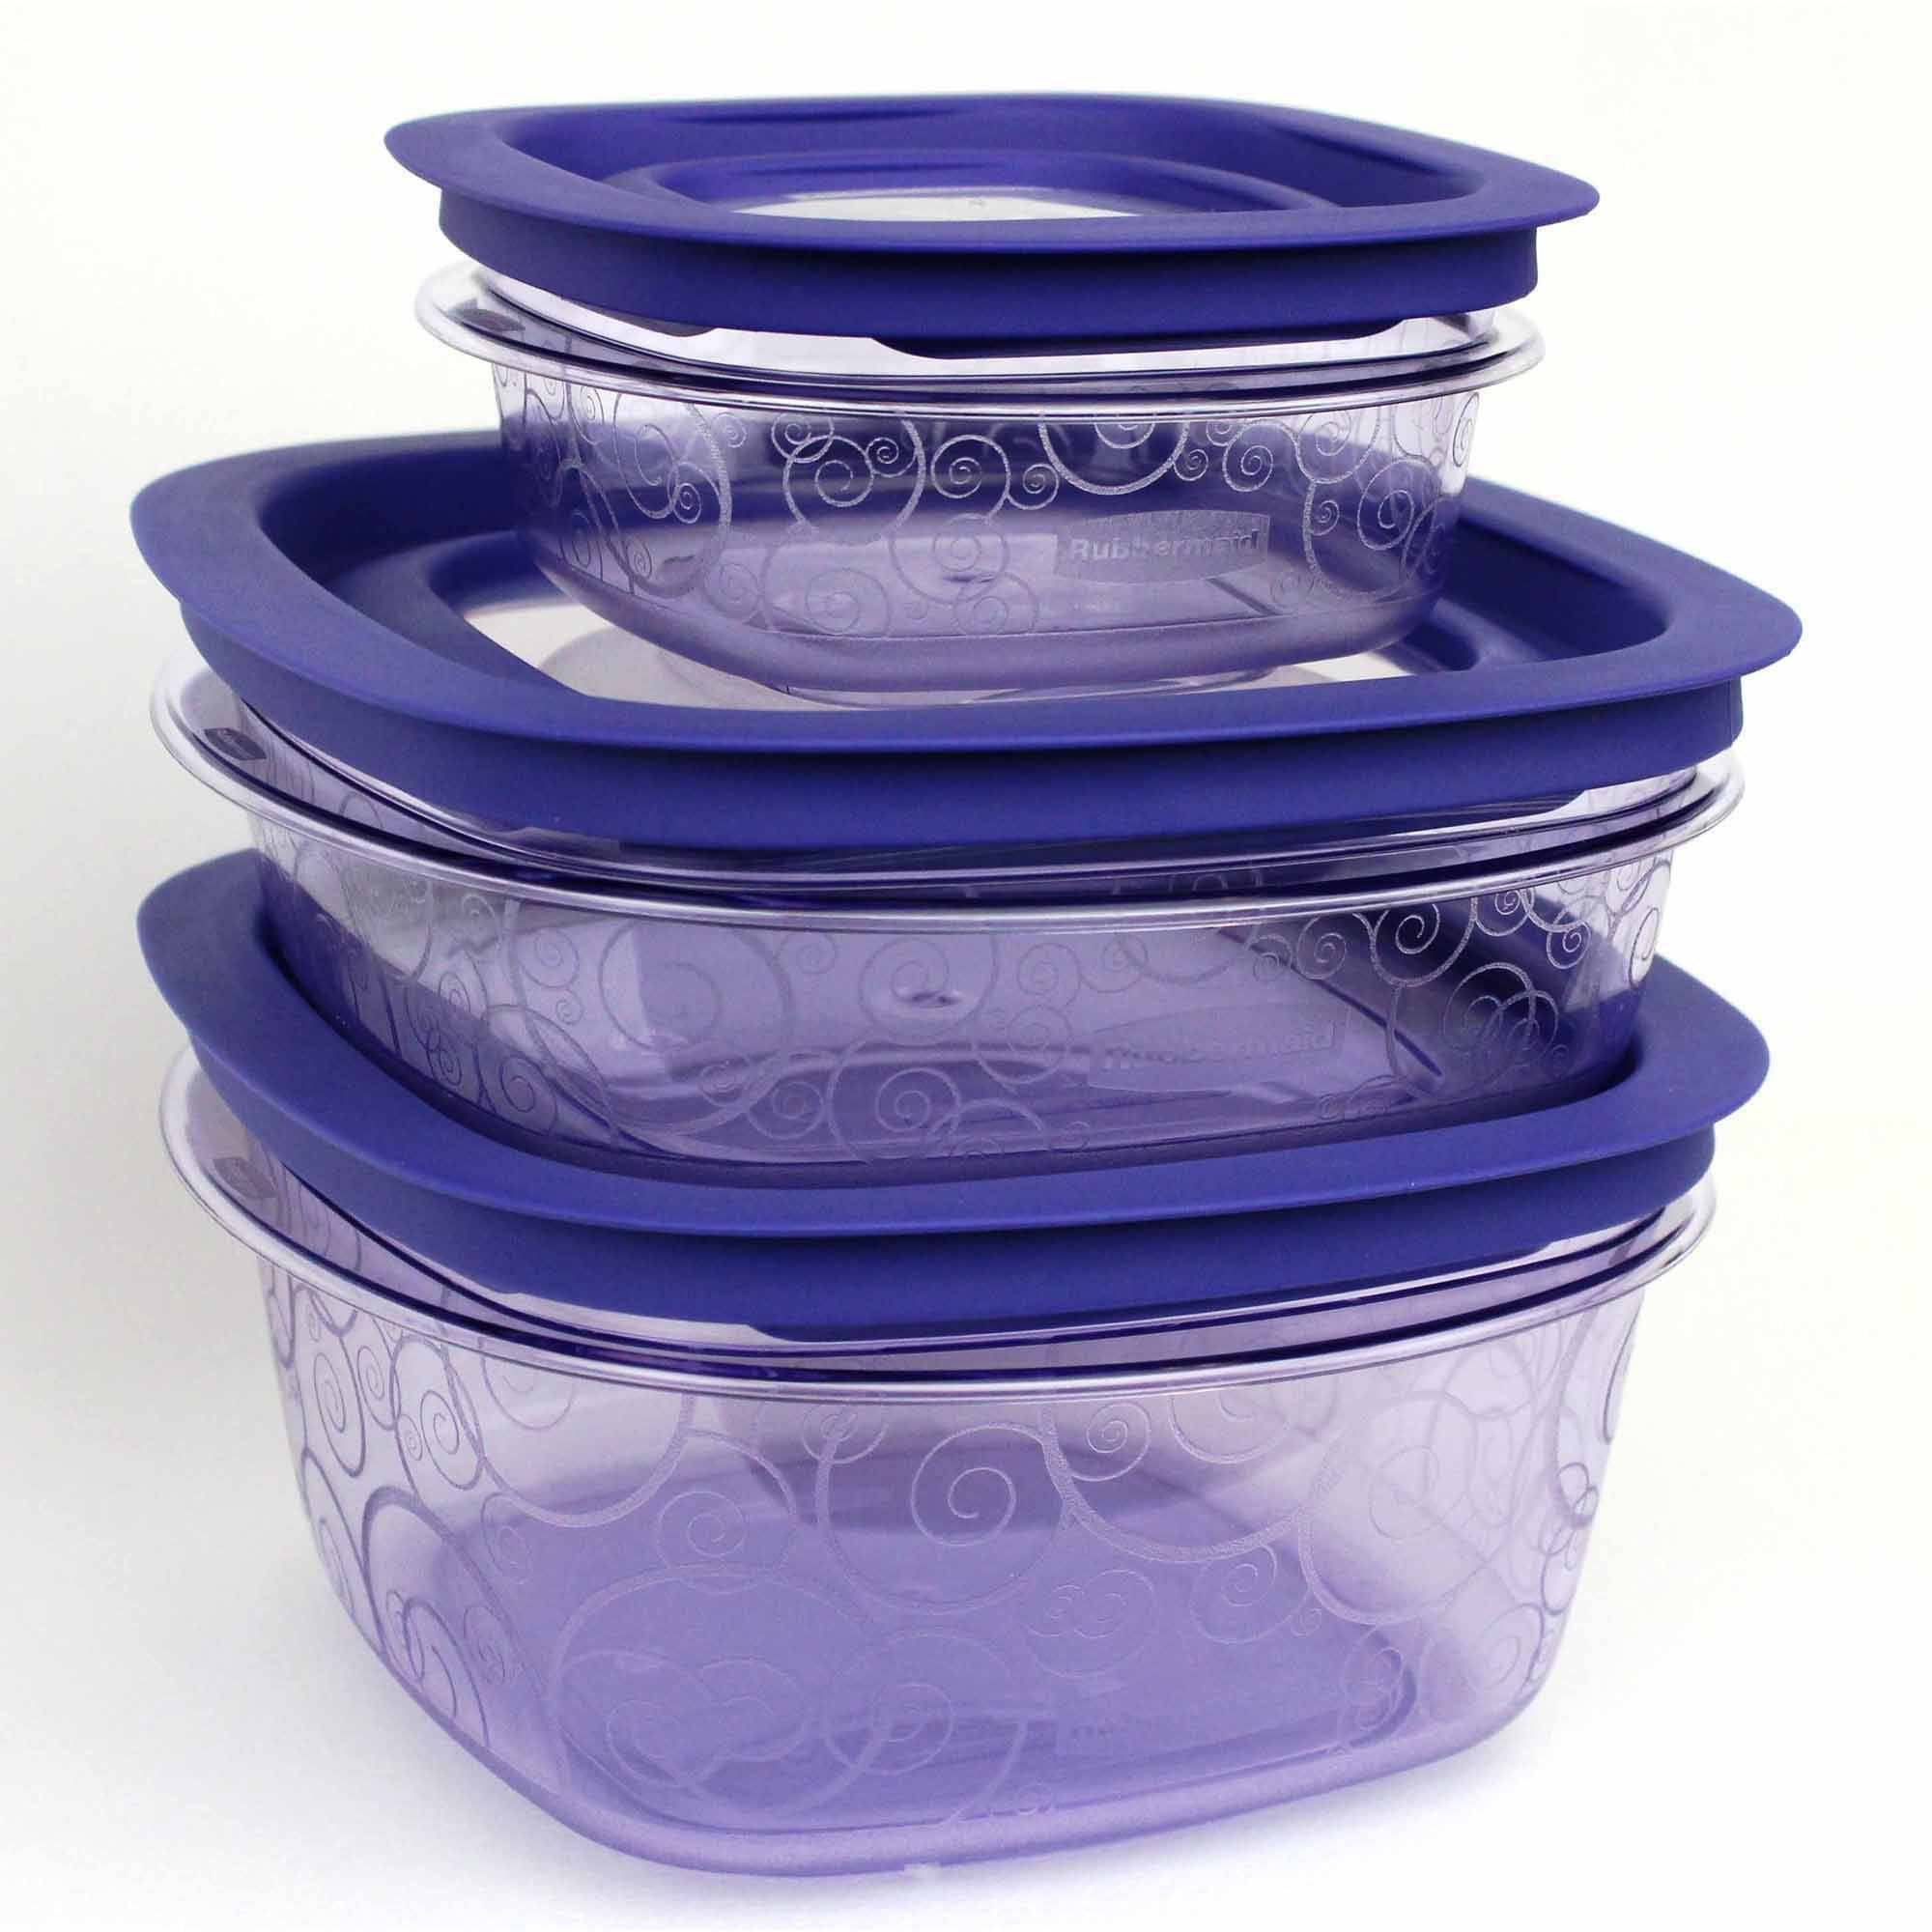 Rubbermaid Premier Food Storage Set 30 Ct Designs  sc 1 th 225 & Rubbermaid Premier Food Storage Set 30 Ct - Storage Designs